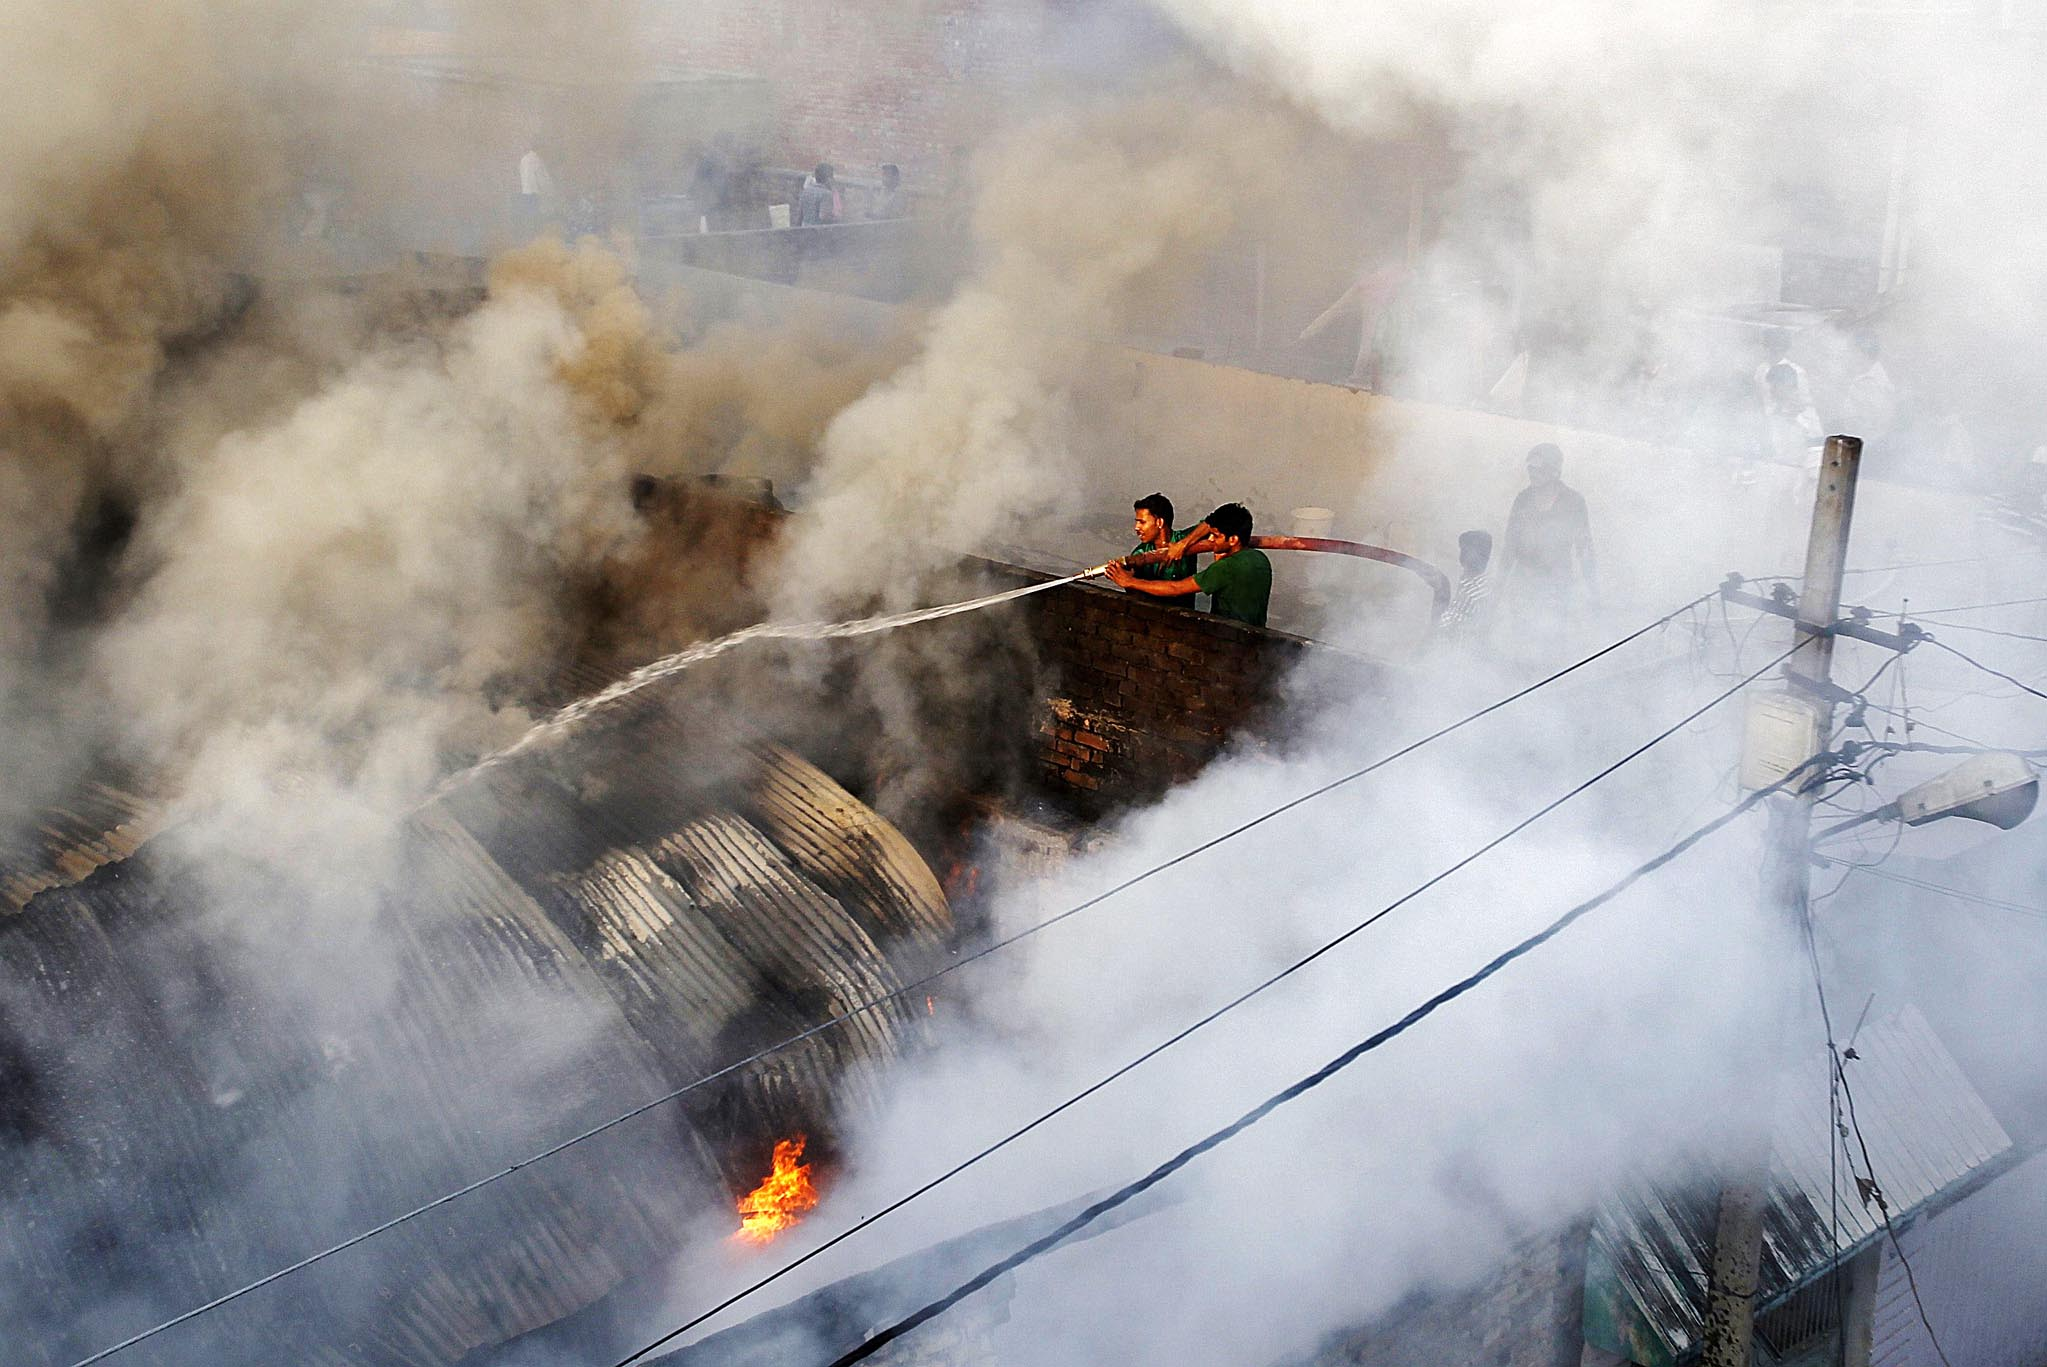 Firefighters try to douse a fire at a cotton factory in Allahabad